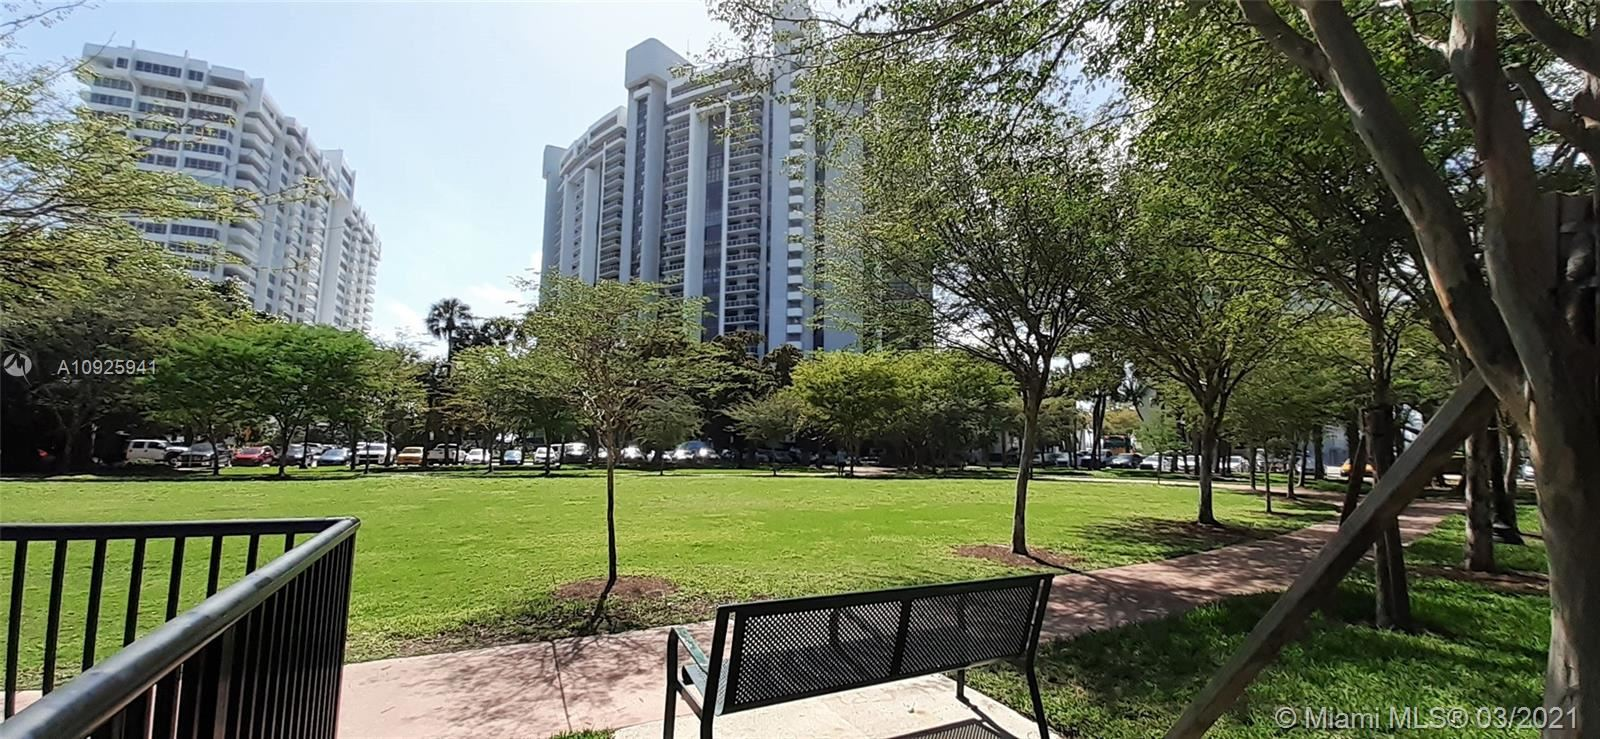 9 Island Ave #510, Miami Beach, FL 33139 - #: A10925941